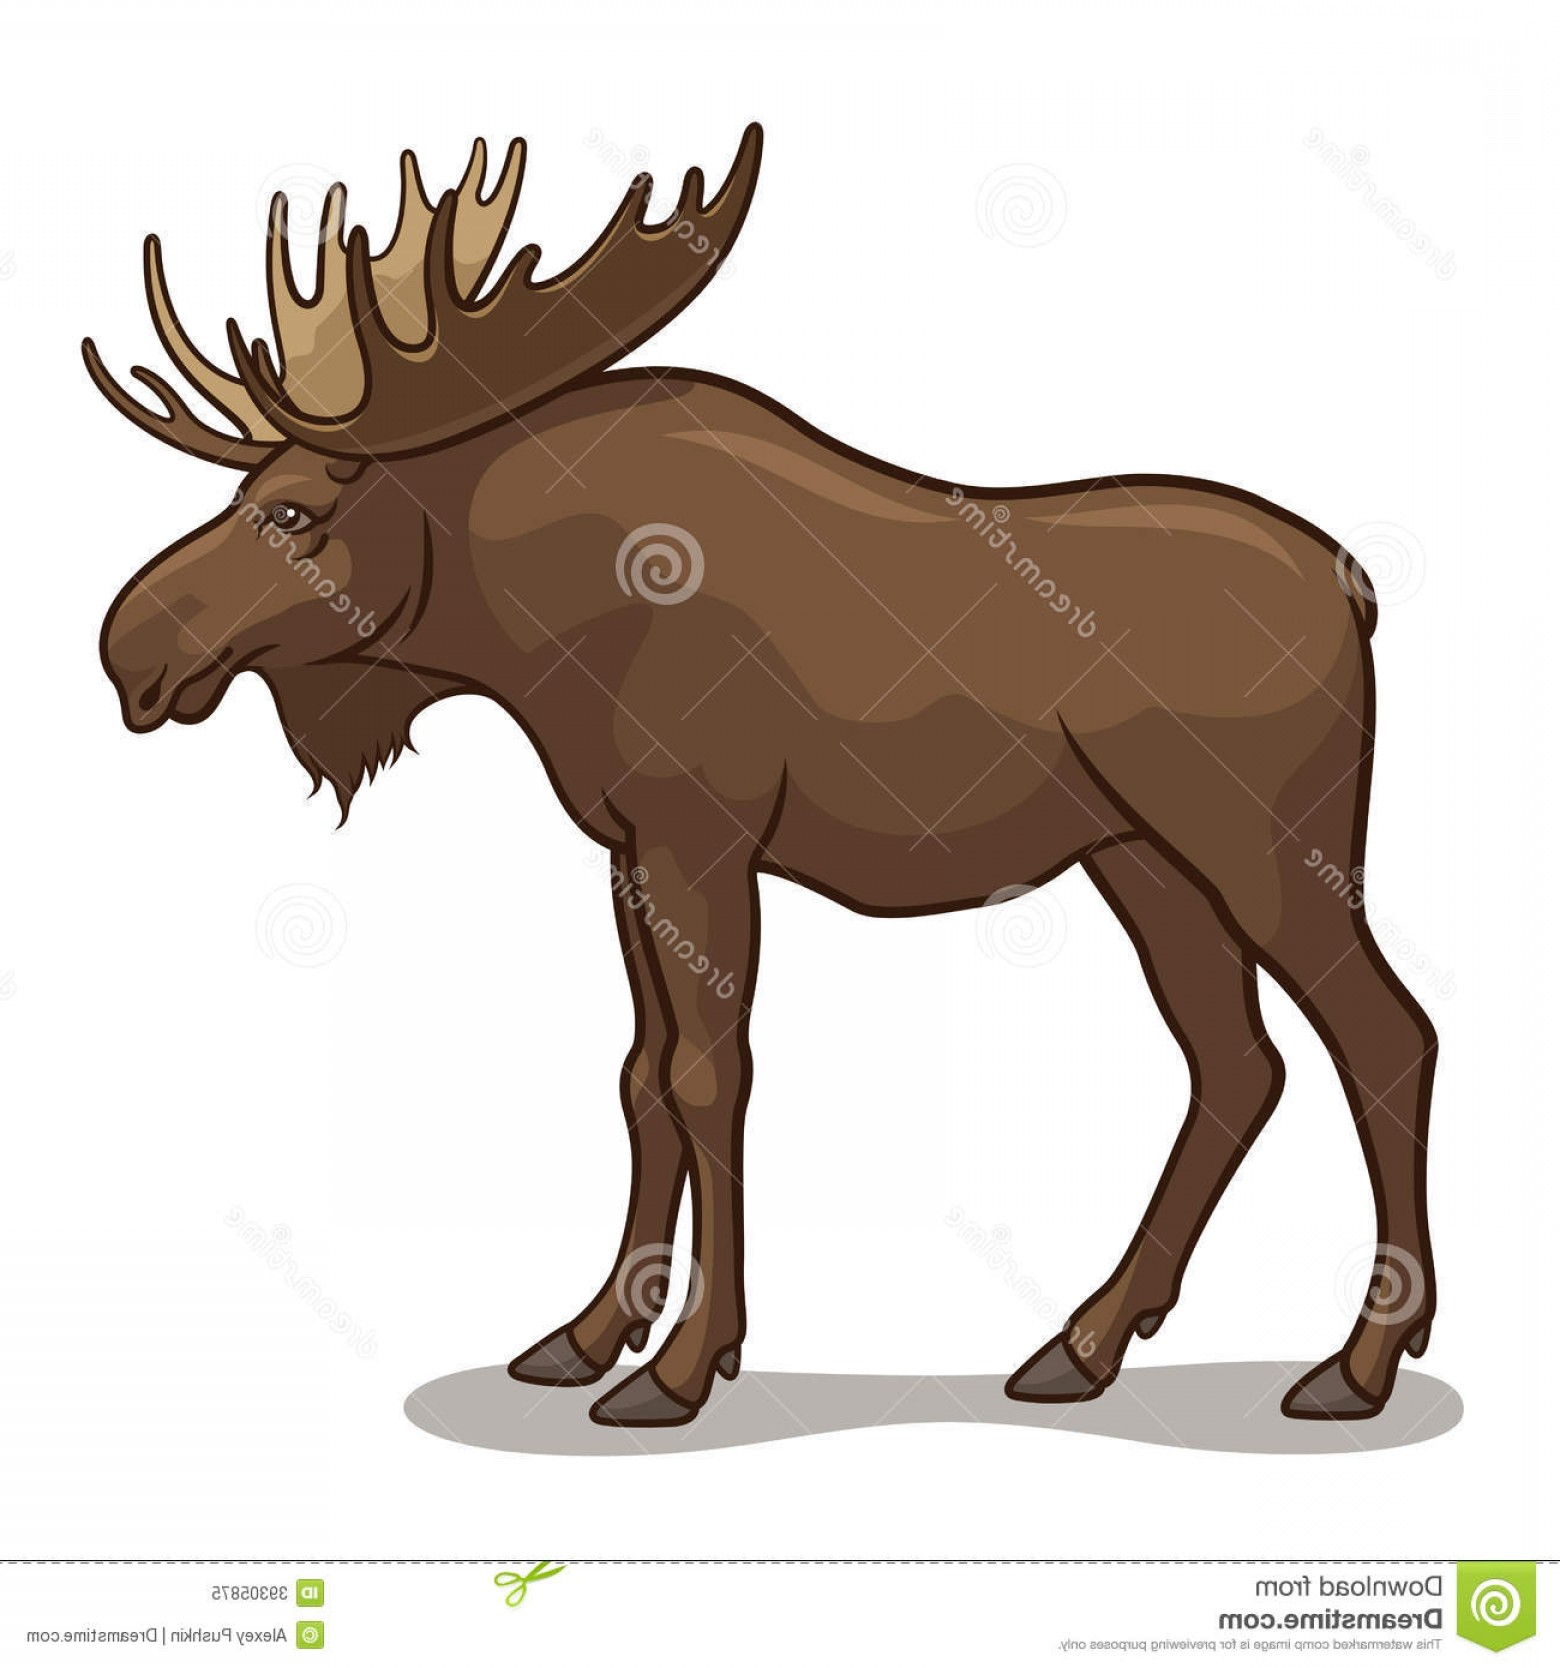 Alaska Moose Vectors: Royalty Free Stock Photo Moose Vector Illustration Isolated White Background Image